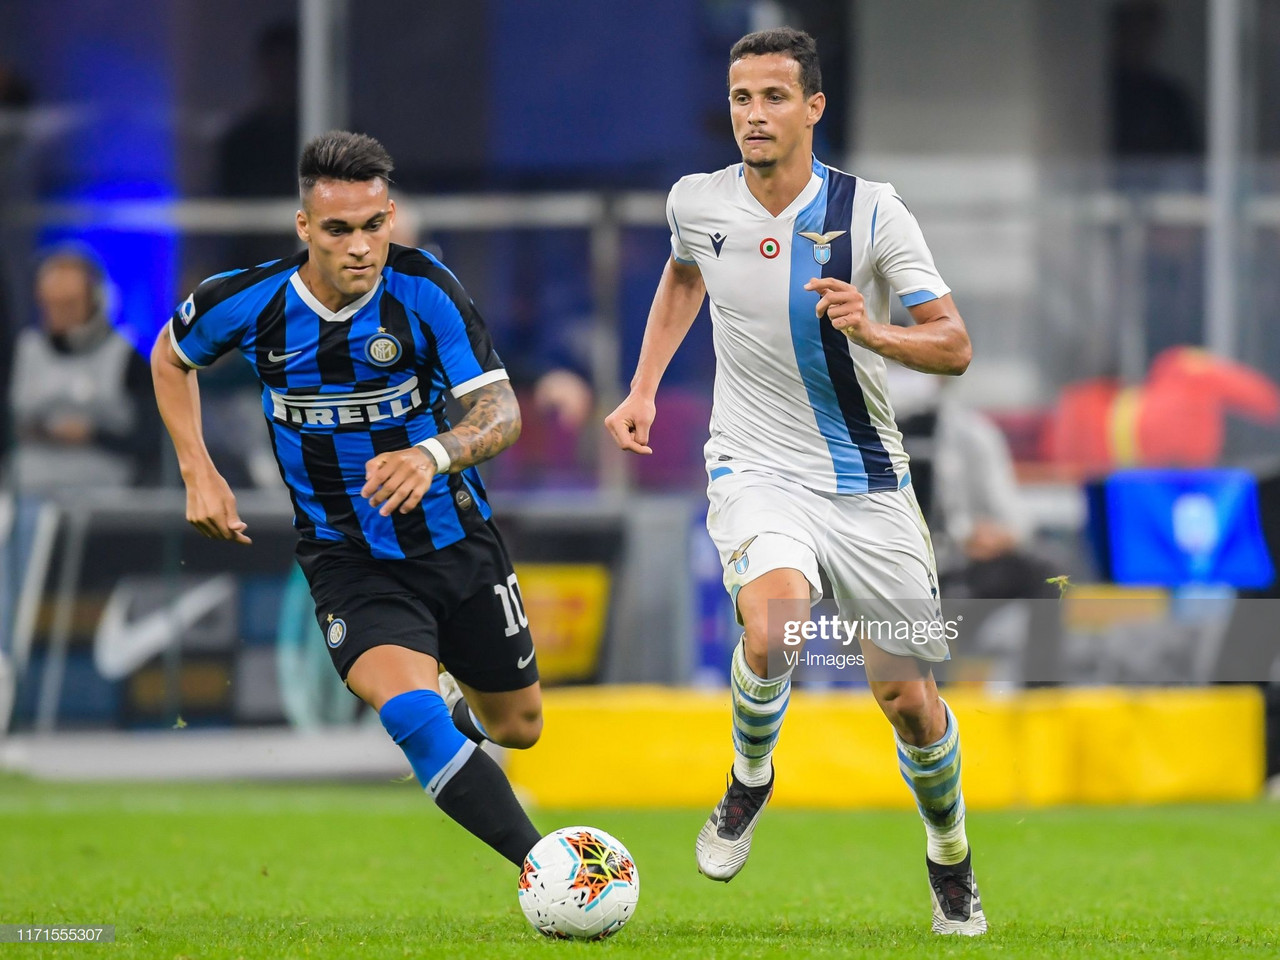 Lazio vs Inter Milan preview: Nerazzurri aim to hold out title rivals in crunch clash